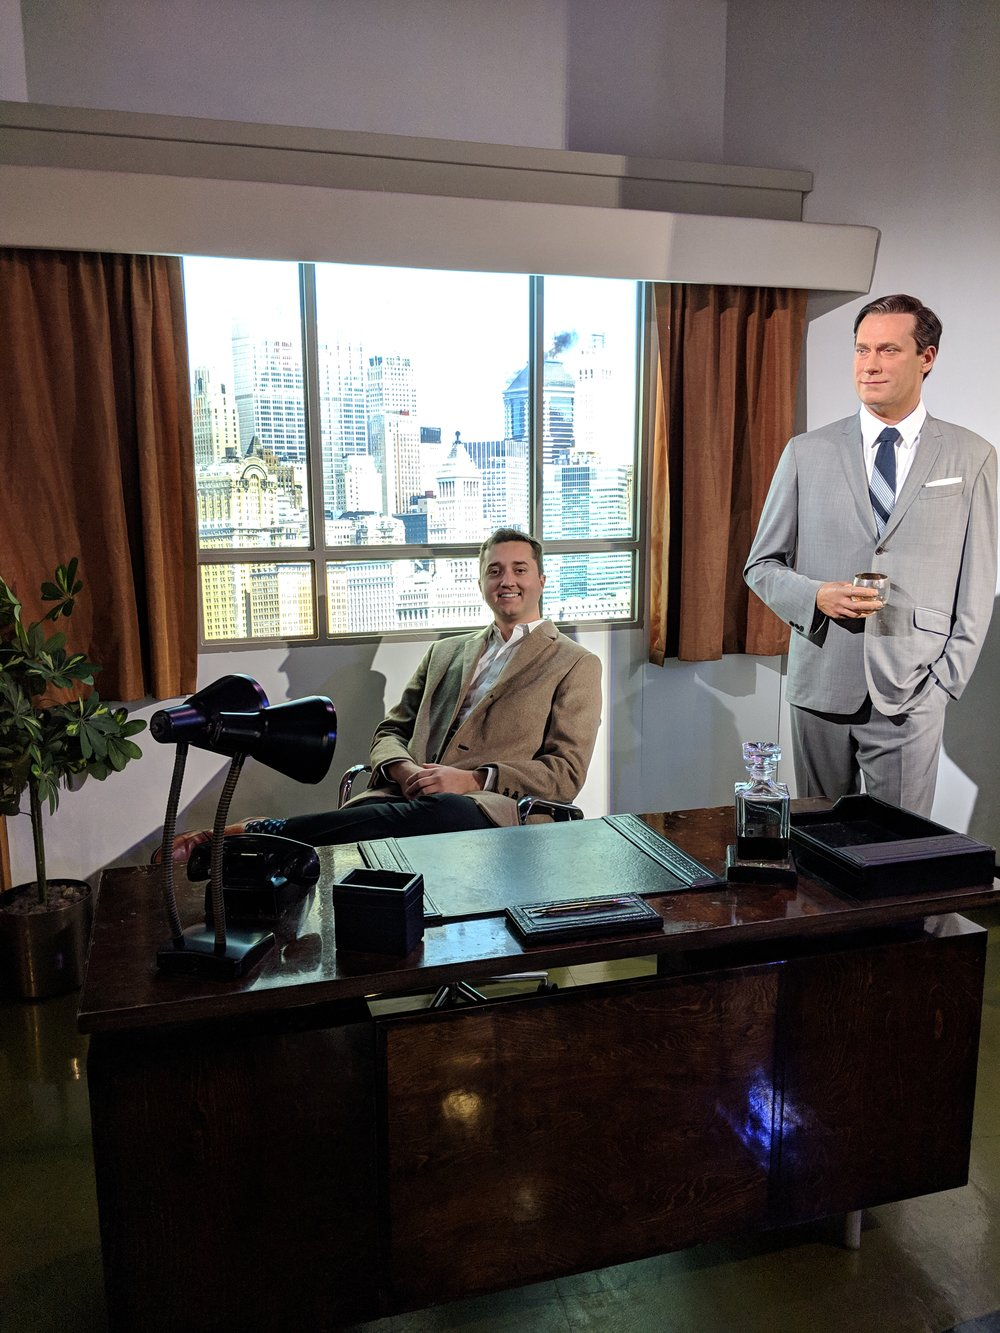 Mad Men display at Madame Tussauds